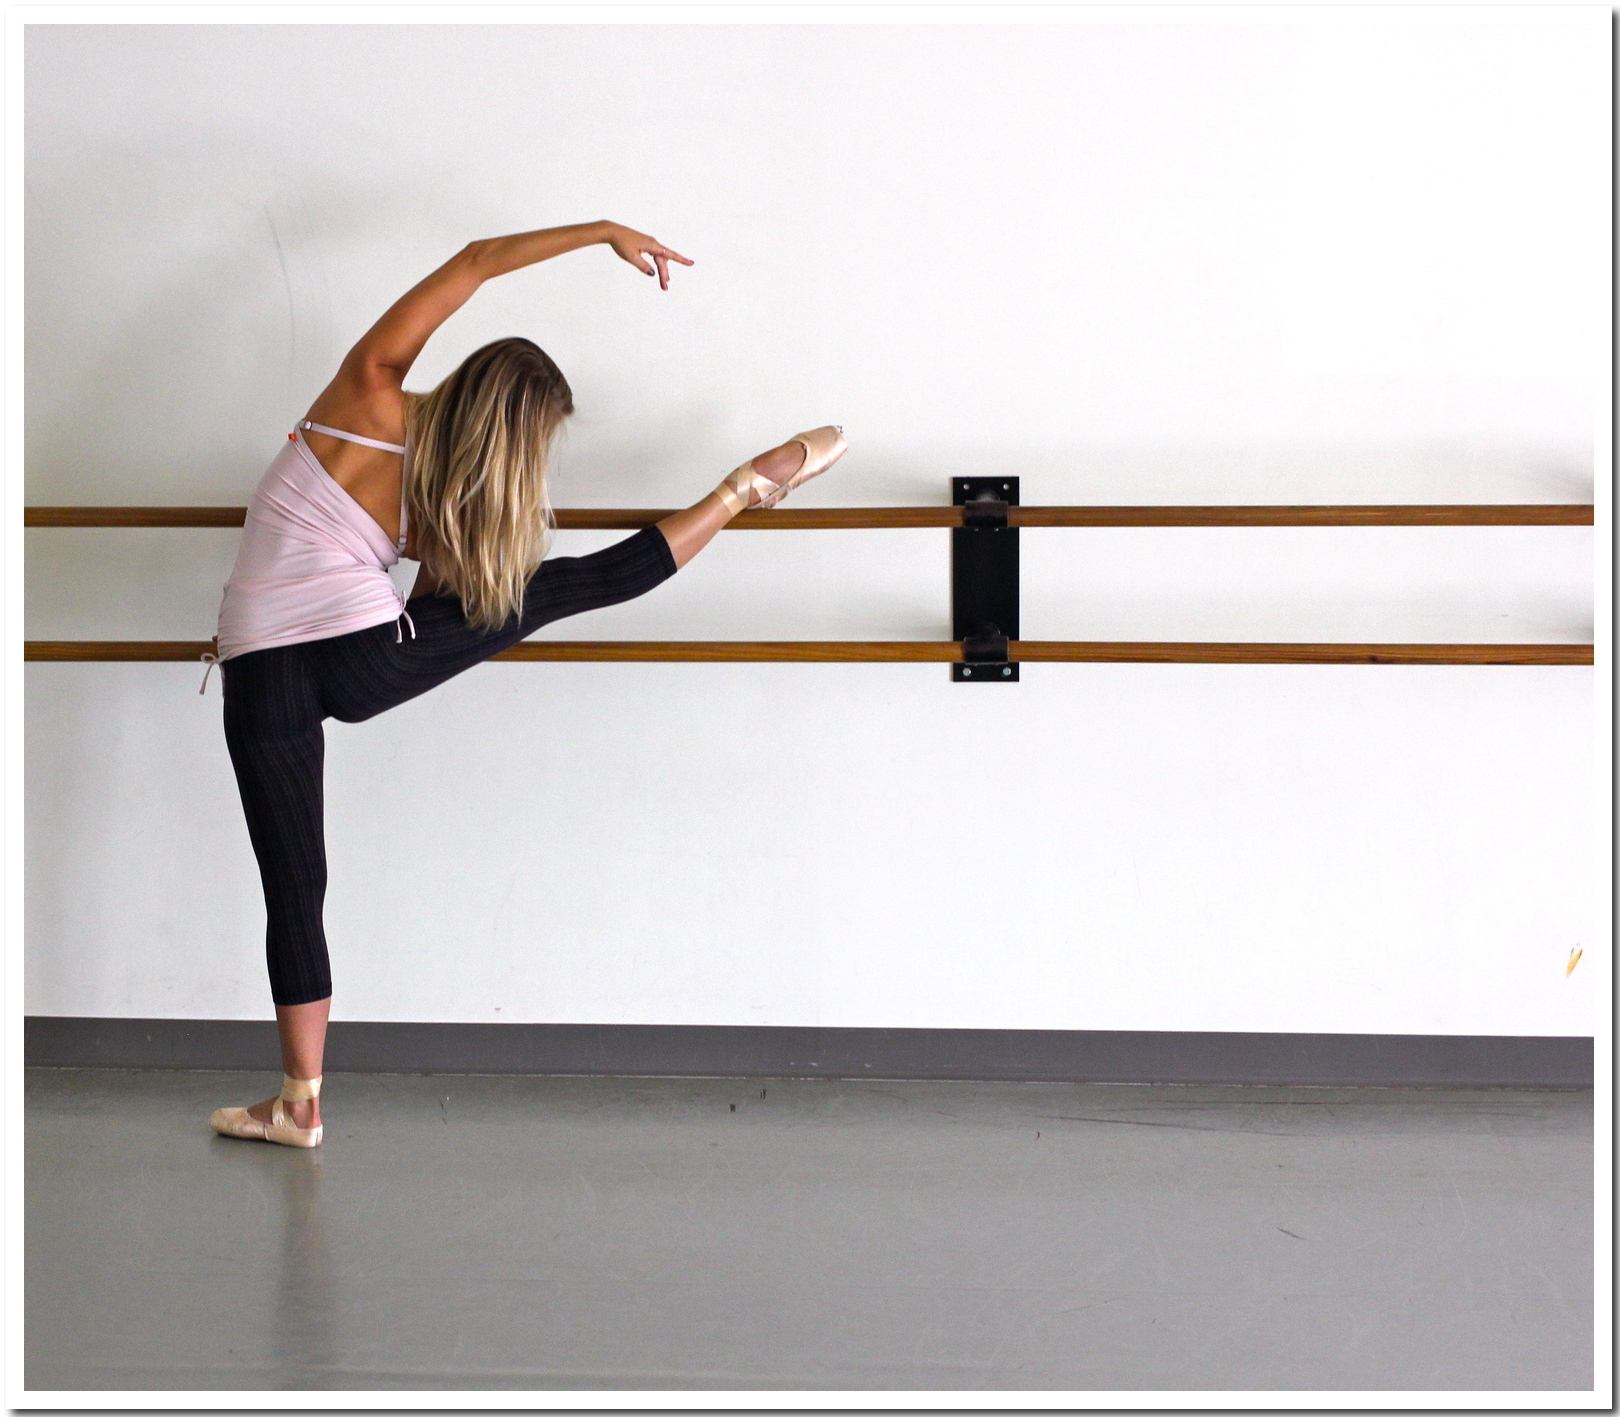 Back at the barre